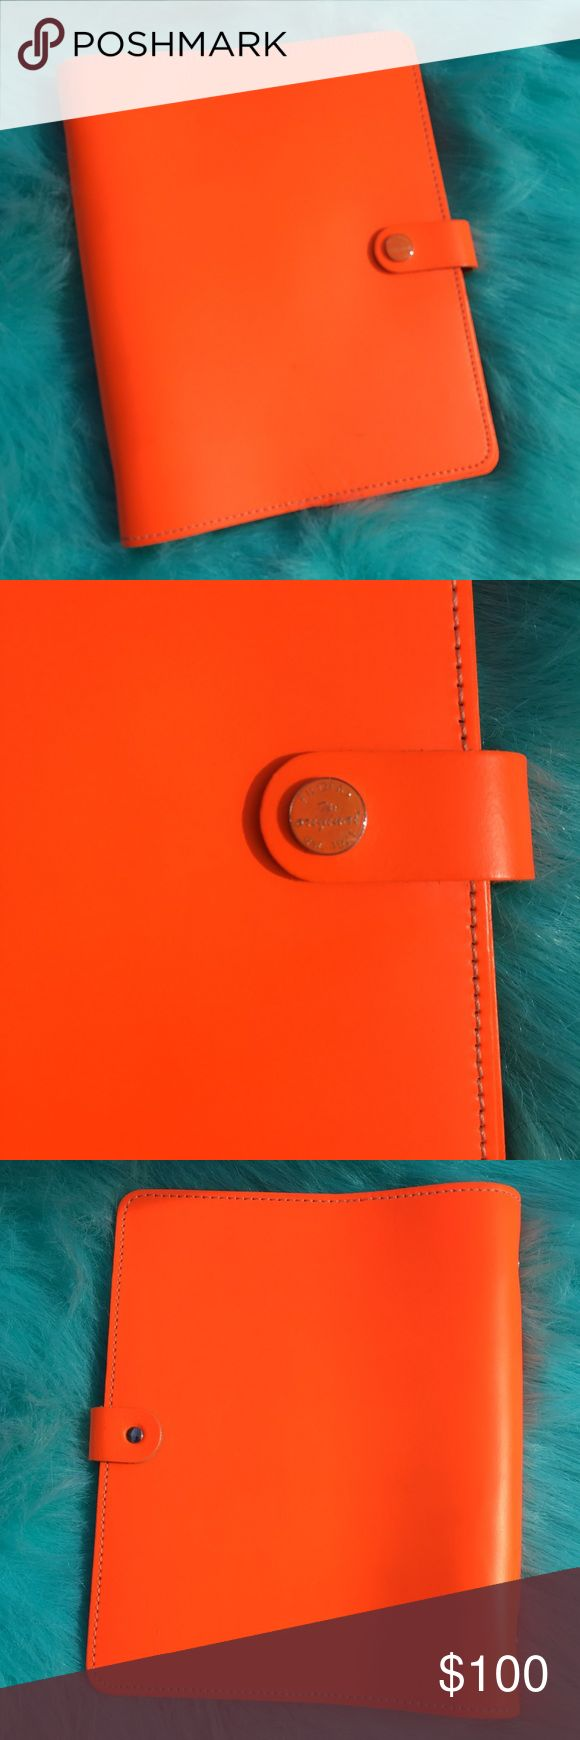 "Filofax A5 original in Fluro orange Filofax, the original organizer, in Fluro orange. Real leather. A5 size. This color is bright and glorious- much brighter in person! Has been used with minor signs of wear. I tried to show minor wear in last photo and inside leather. Can continue to be loved for years to come! Planner comes as is- no inserts, but can easily buy refills online. Height: 9.25"", Width: 7.52"", Depth: 2.17"", leather closure strap with branded popper, Ring Mech: 1"". Thanks for…"